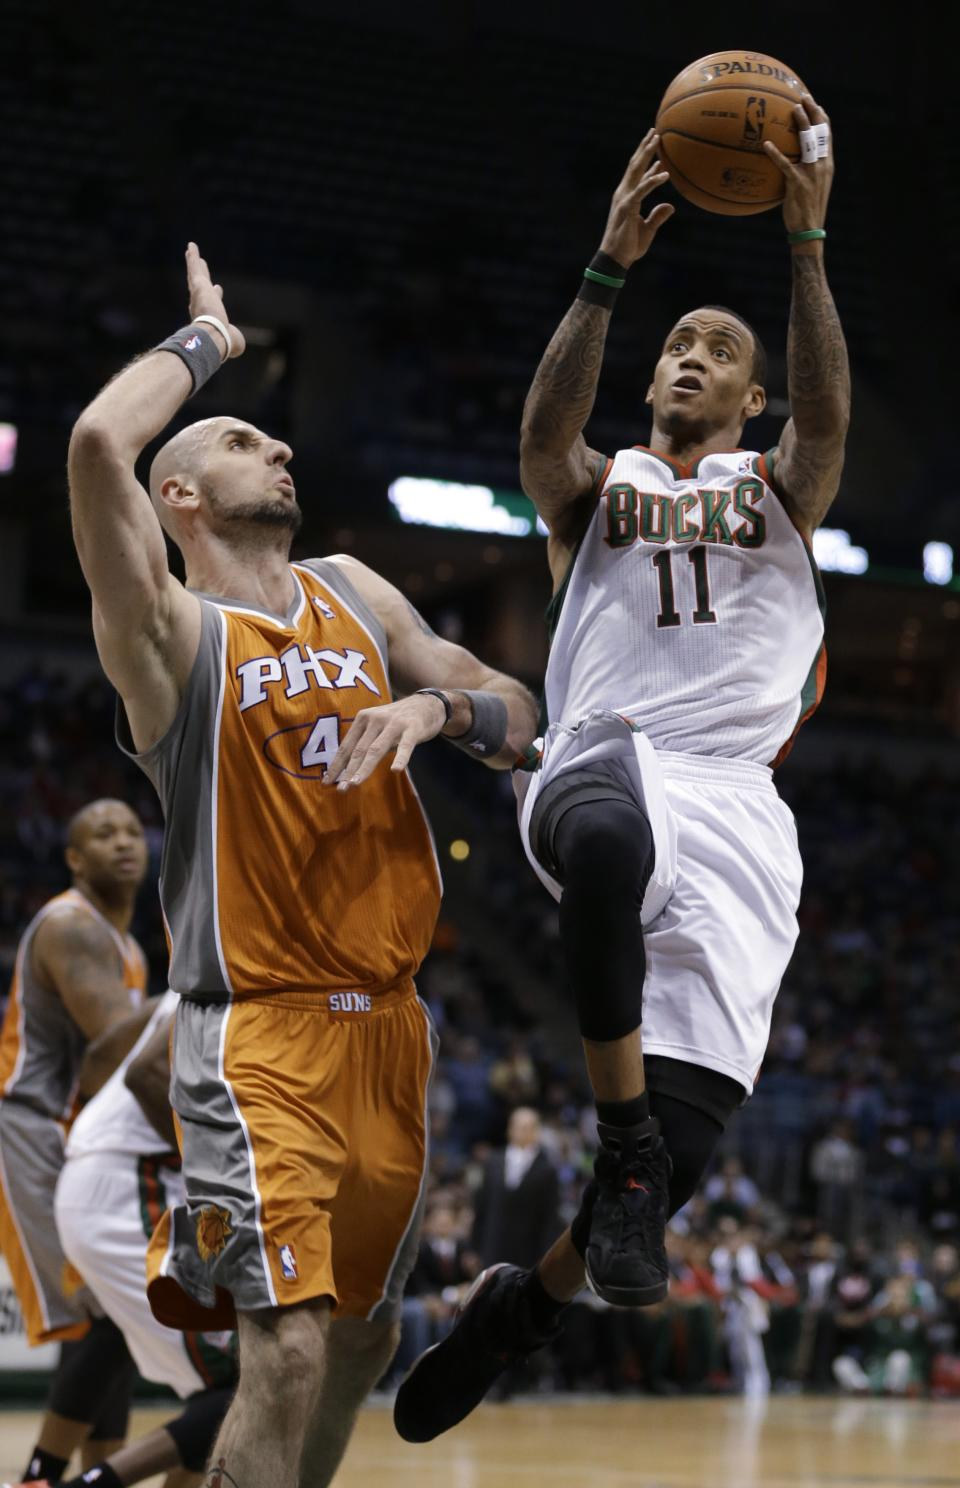 Milwaukee Bucks' Monta Ellis (11) drives against Phoenix Suns' Marcin Gortat (4) during the second half of an NBA basketball game Tuesday, Jan. 8, 2013, in Milwaukee. (AP Photo/Jeffrey Phelps)